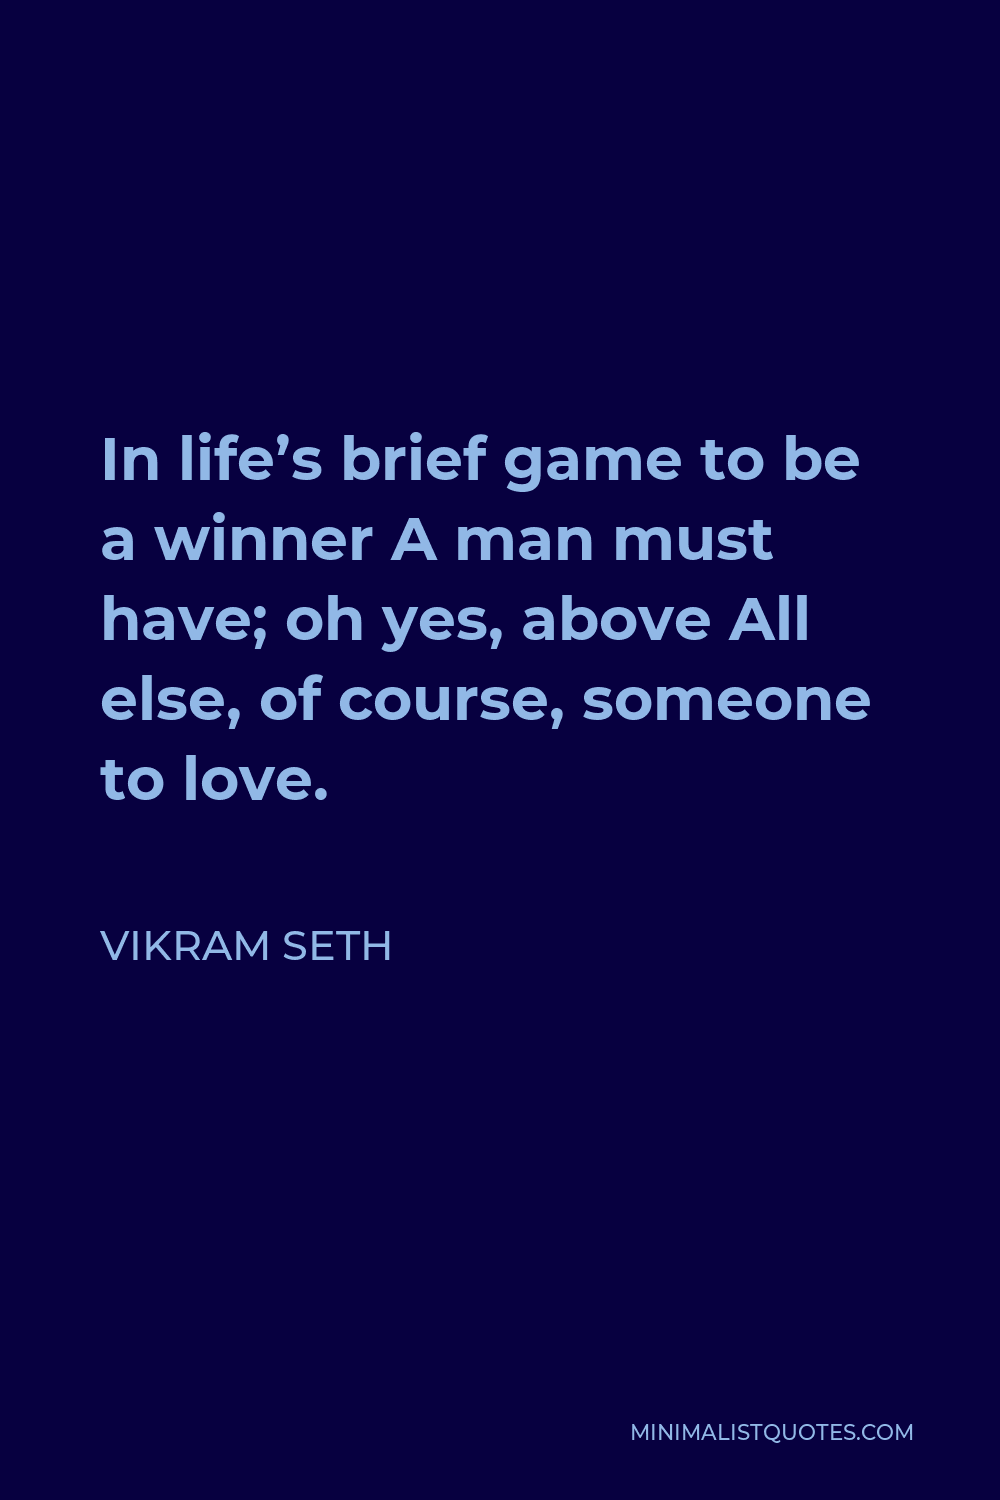 Vikram Seth Quote - In life's brief game to be a winner A man must have; oh yes, above All else, of course, someone to love.